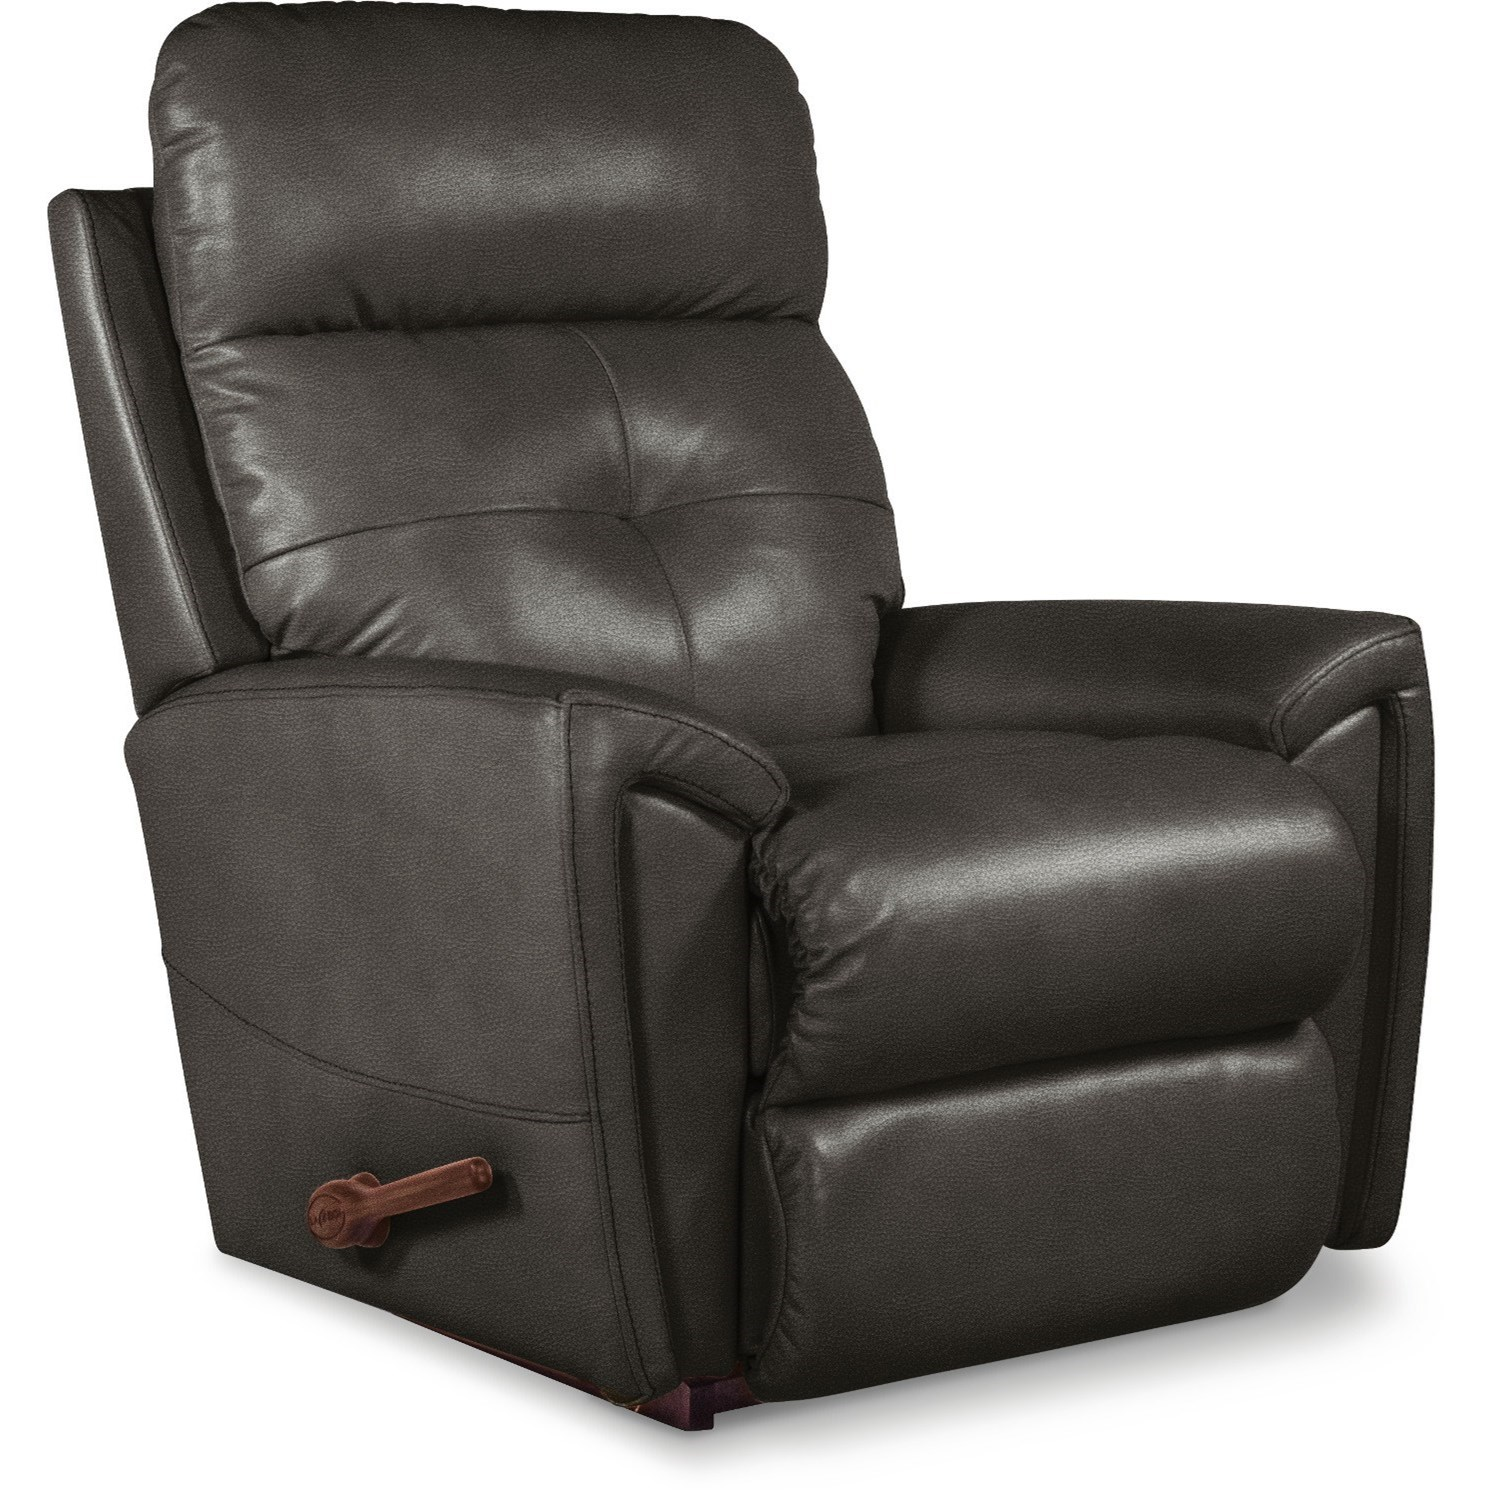 Douglas Wall Recliner by La-Z-Boy at SuperStore